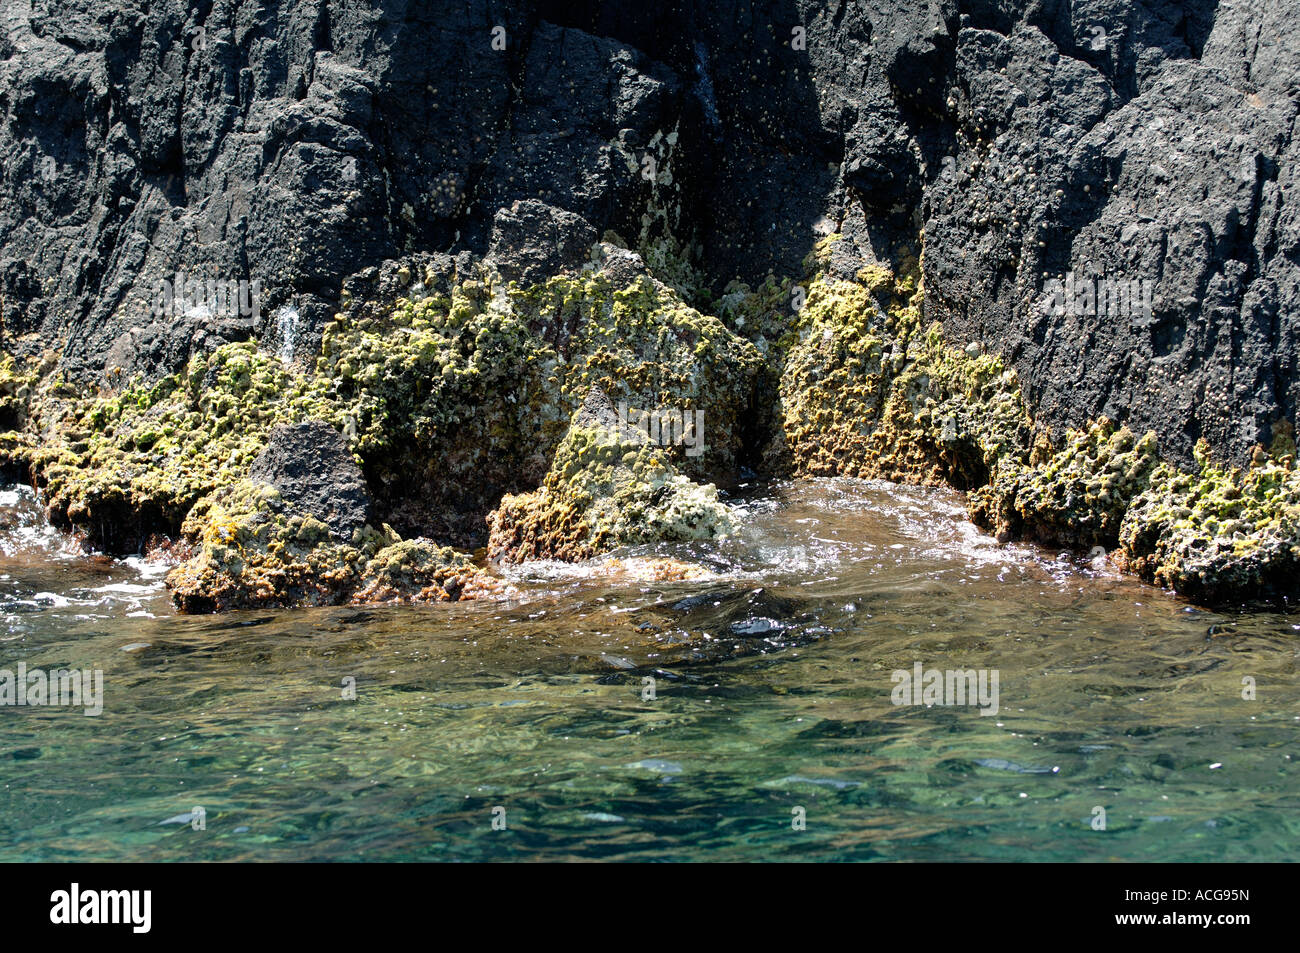 Water line with larval rocks and seaweed and algae clear Mediterranean water Corsica - Stock Image